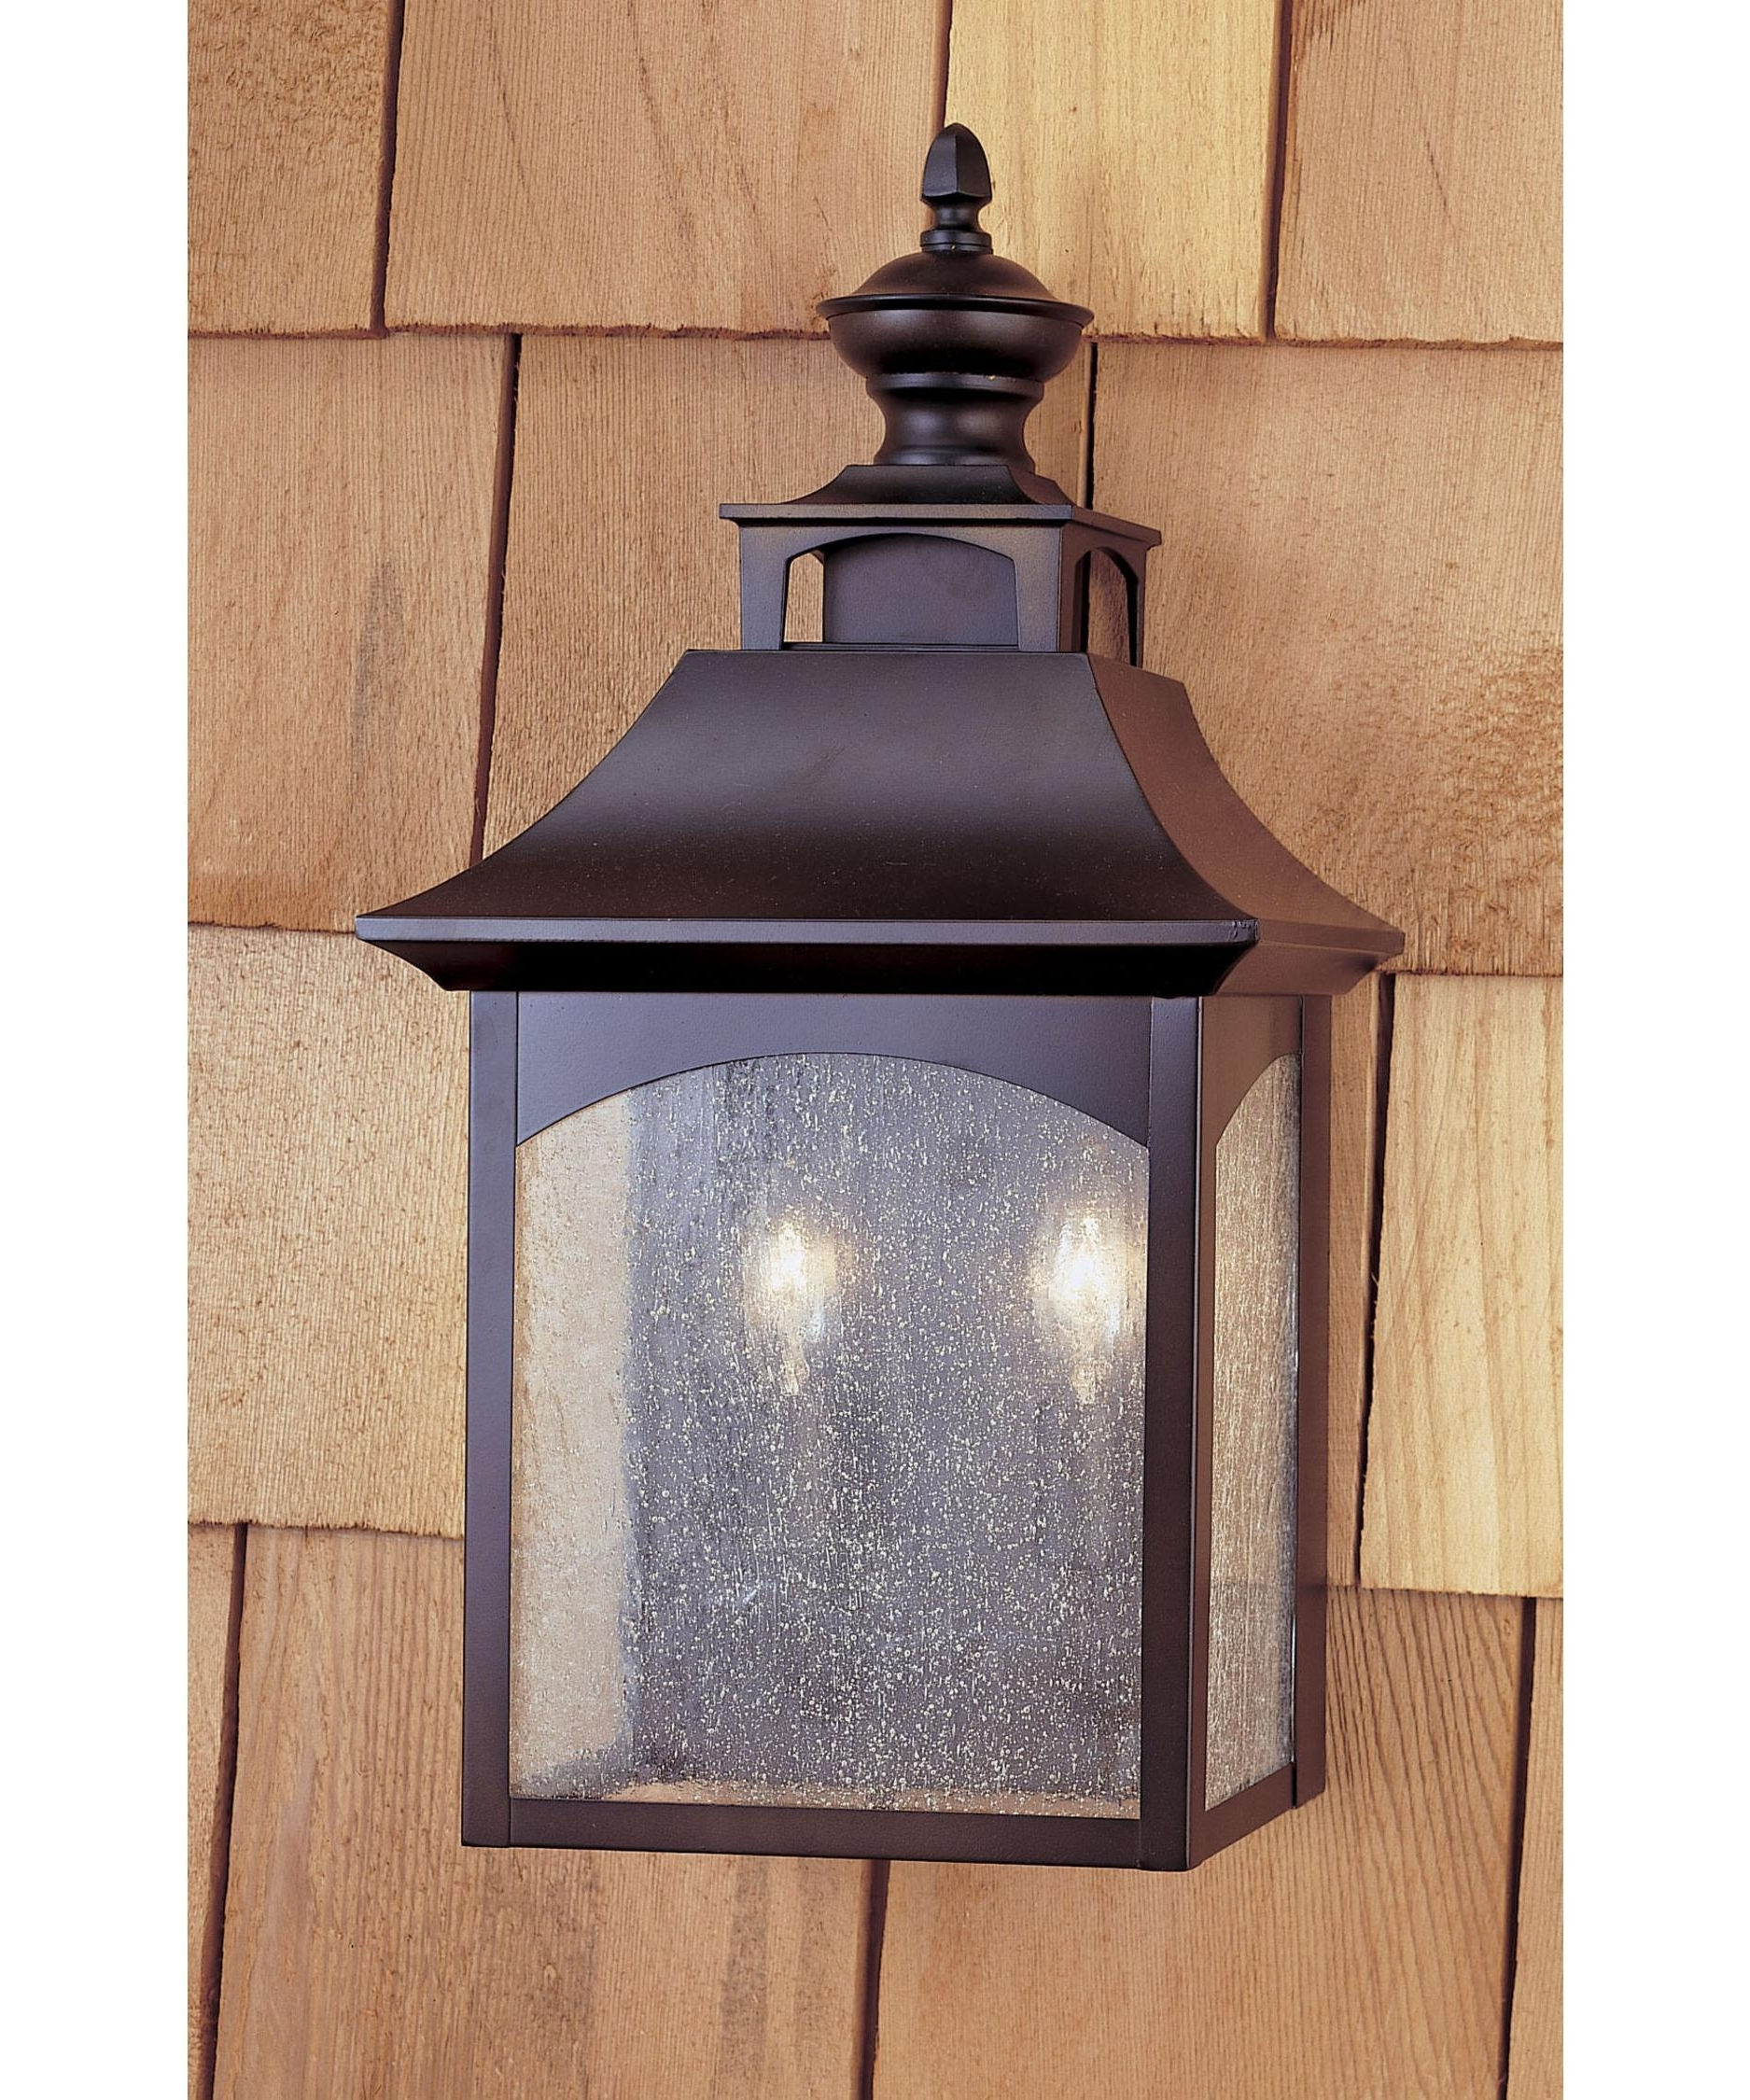 Murray Feiss Ol1003 Homestead 10 Inch Wide 2 Light Outdoor Wall Inside Most Popular Oil Rubbed Bronze Outdoor Wall Lights (View 15 of 20)